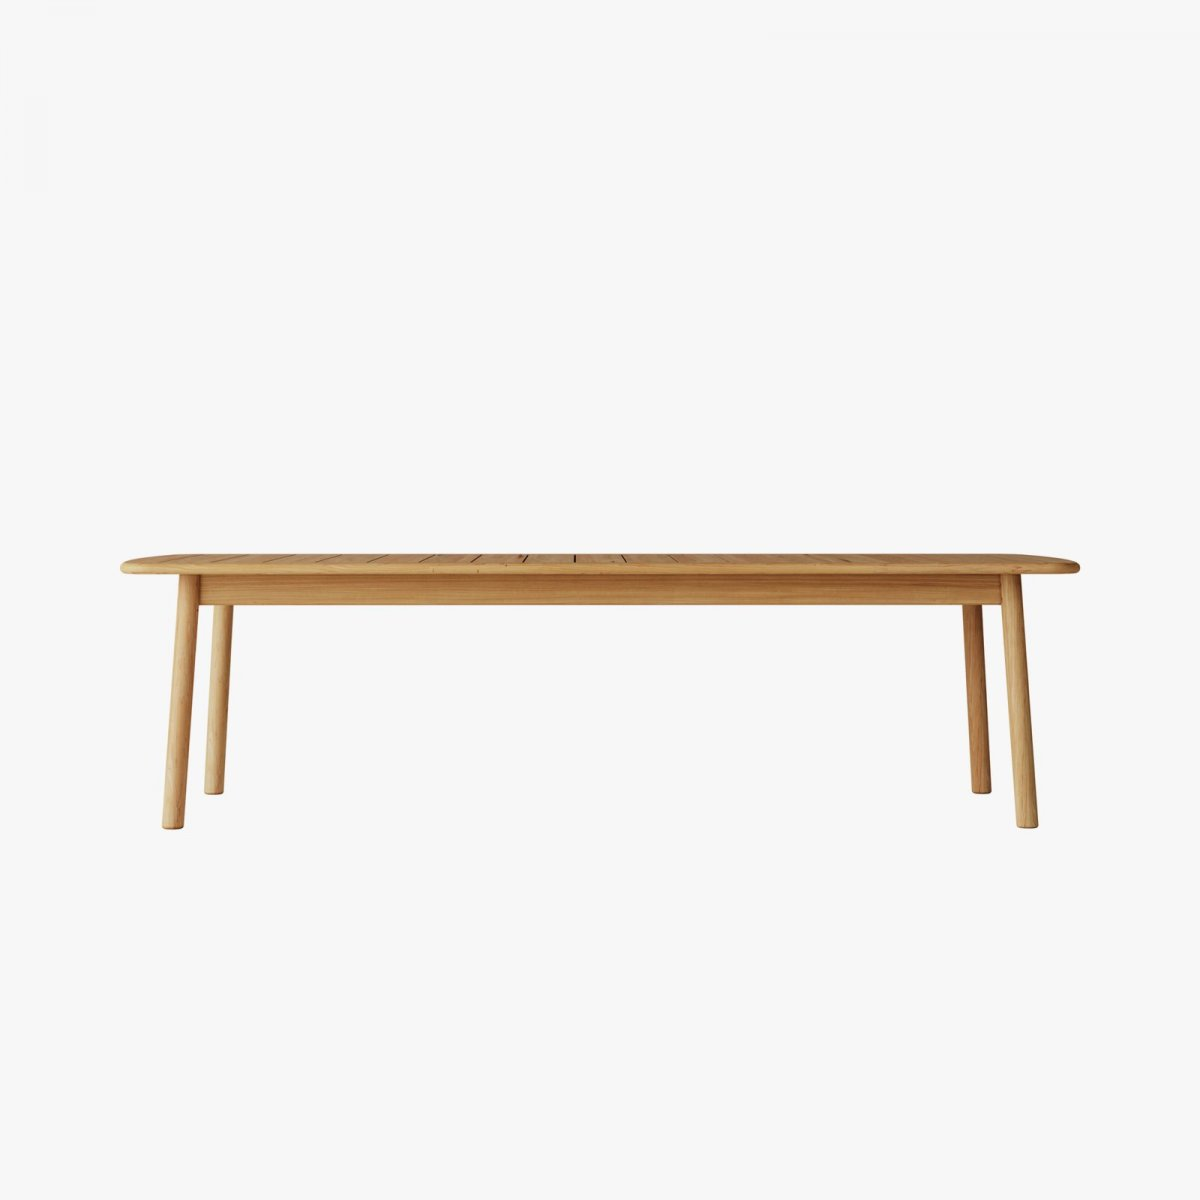 Tanso Rectangular Table, large.